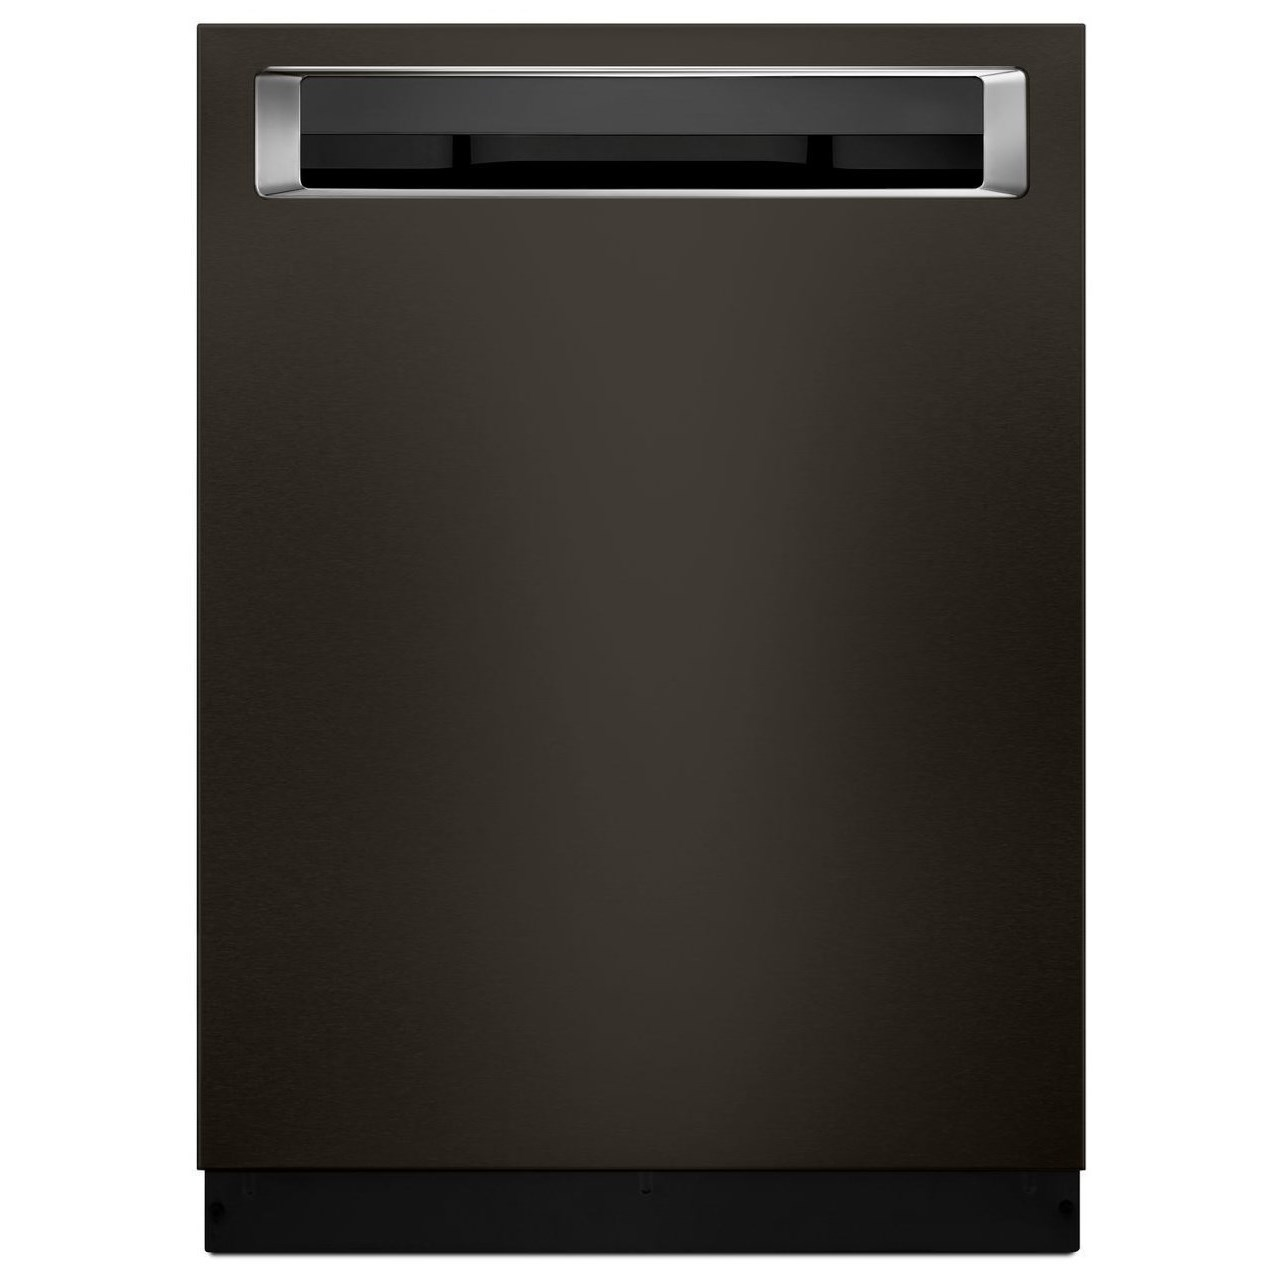 KitchenAid KDPE334GBS 39 dB Black Stainless Built-In Dishwasher with Third Rack